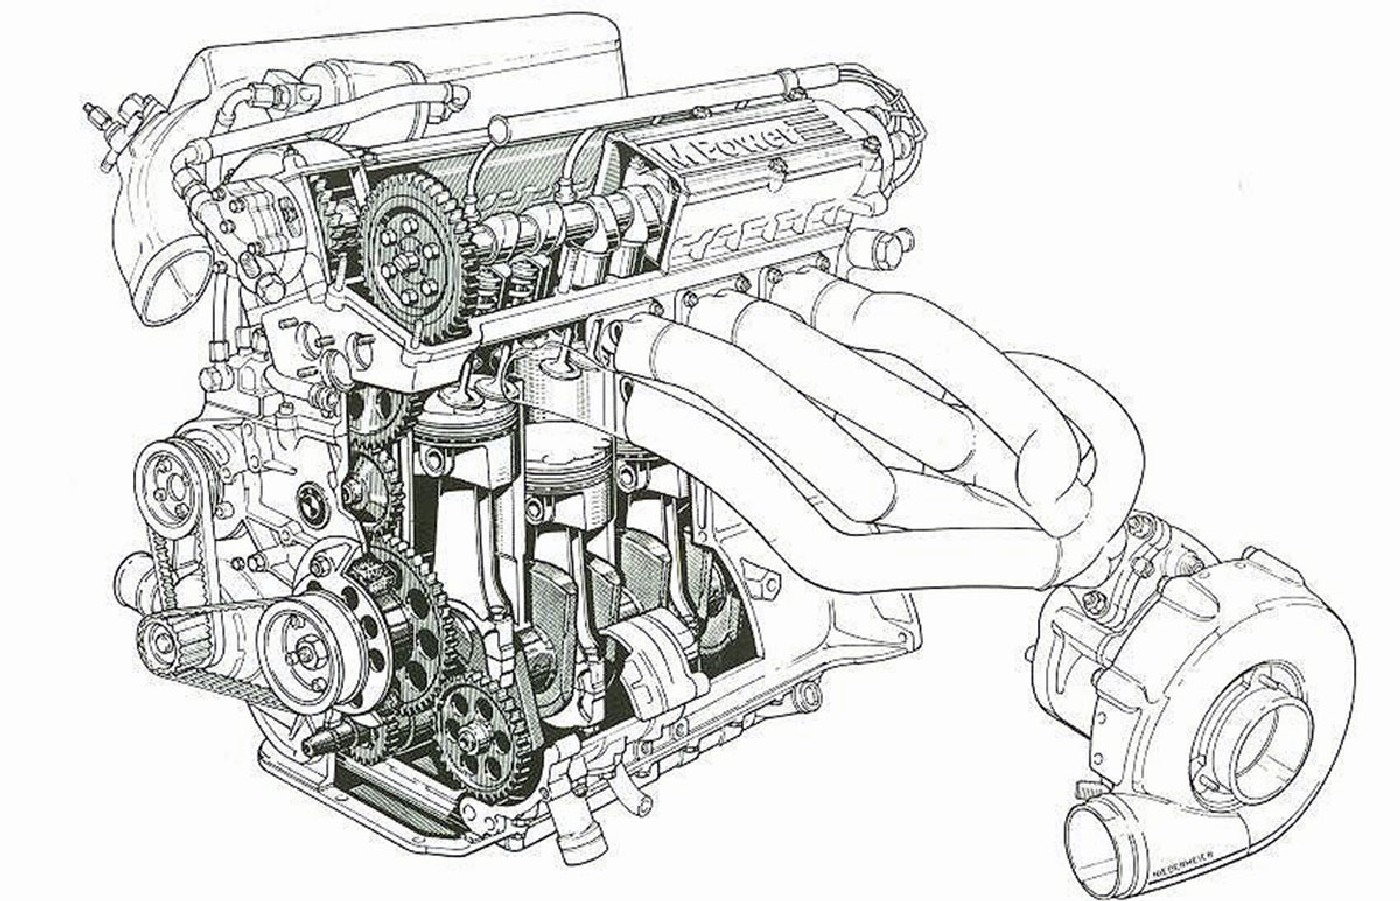 The m10 bmws most successful engine name bmw m12 engine diagramg views 20778 size 3316 kb malvernweather